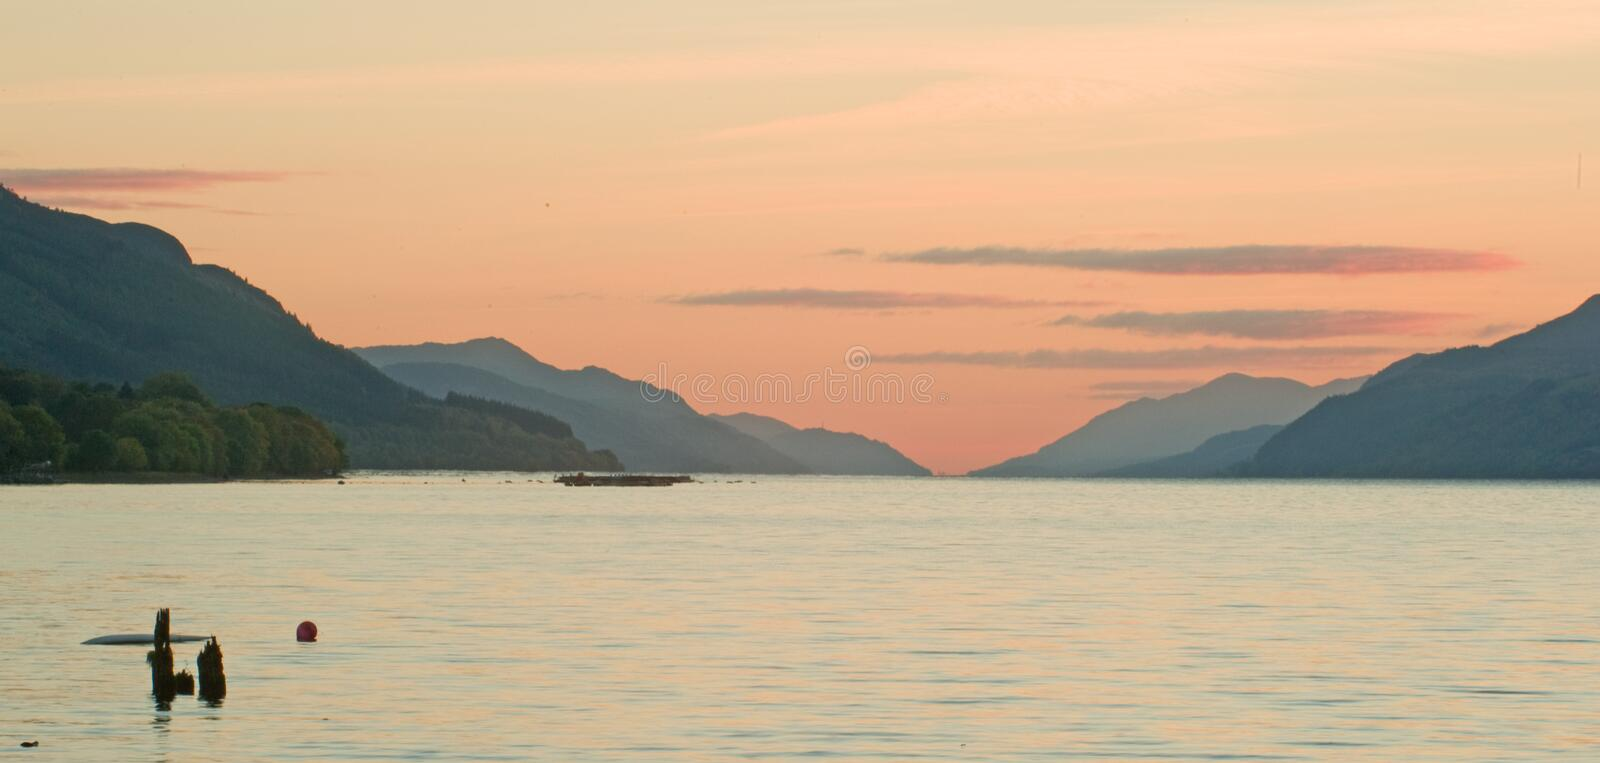 Loch Ness at sunset. royalty free stock photography